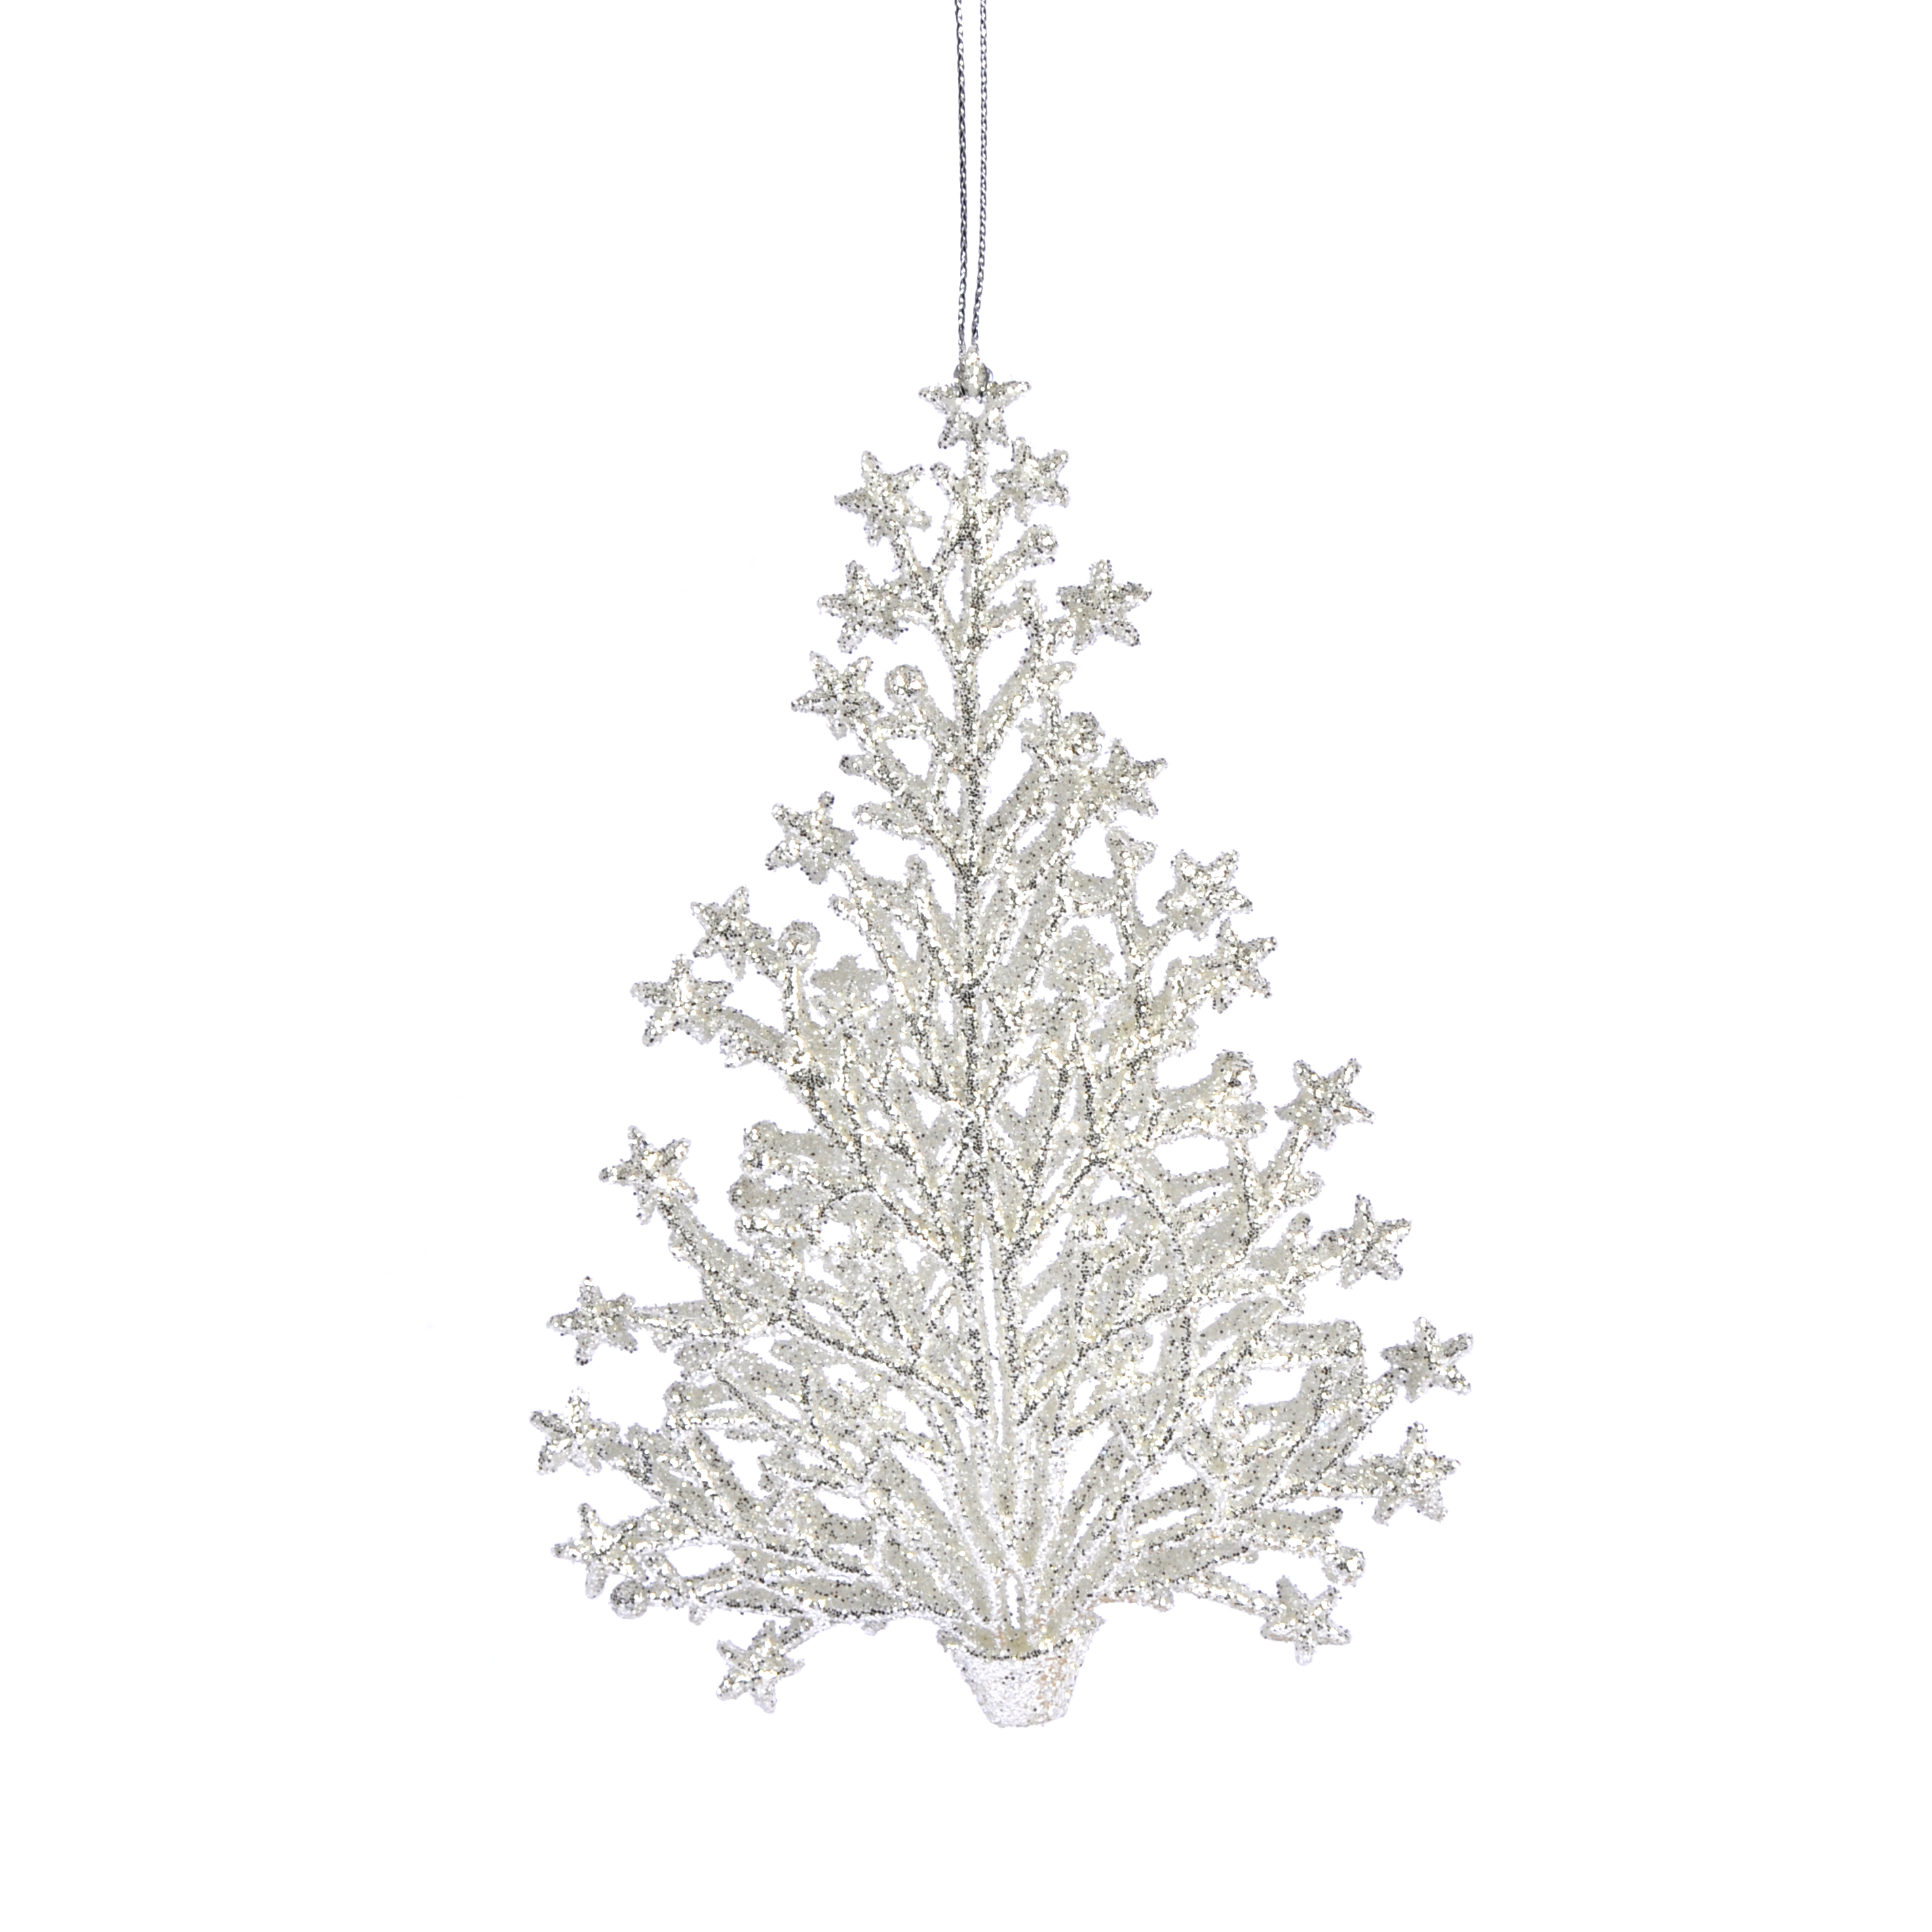 Silver Trees Clipart 20 Free Cliparts